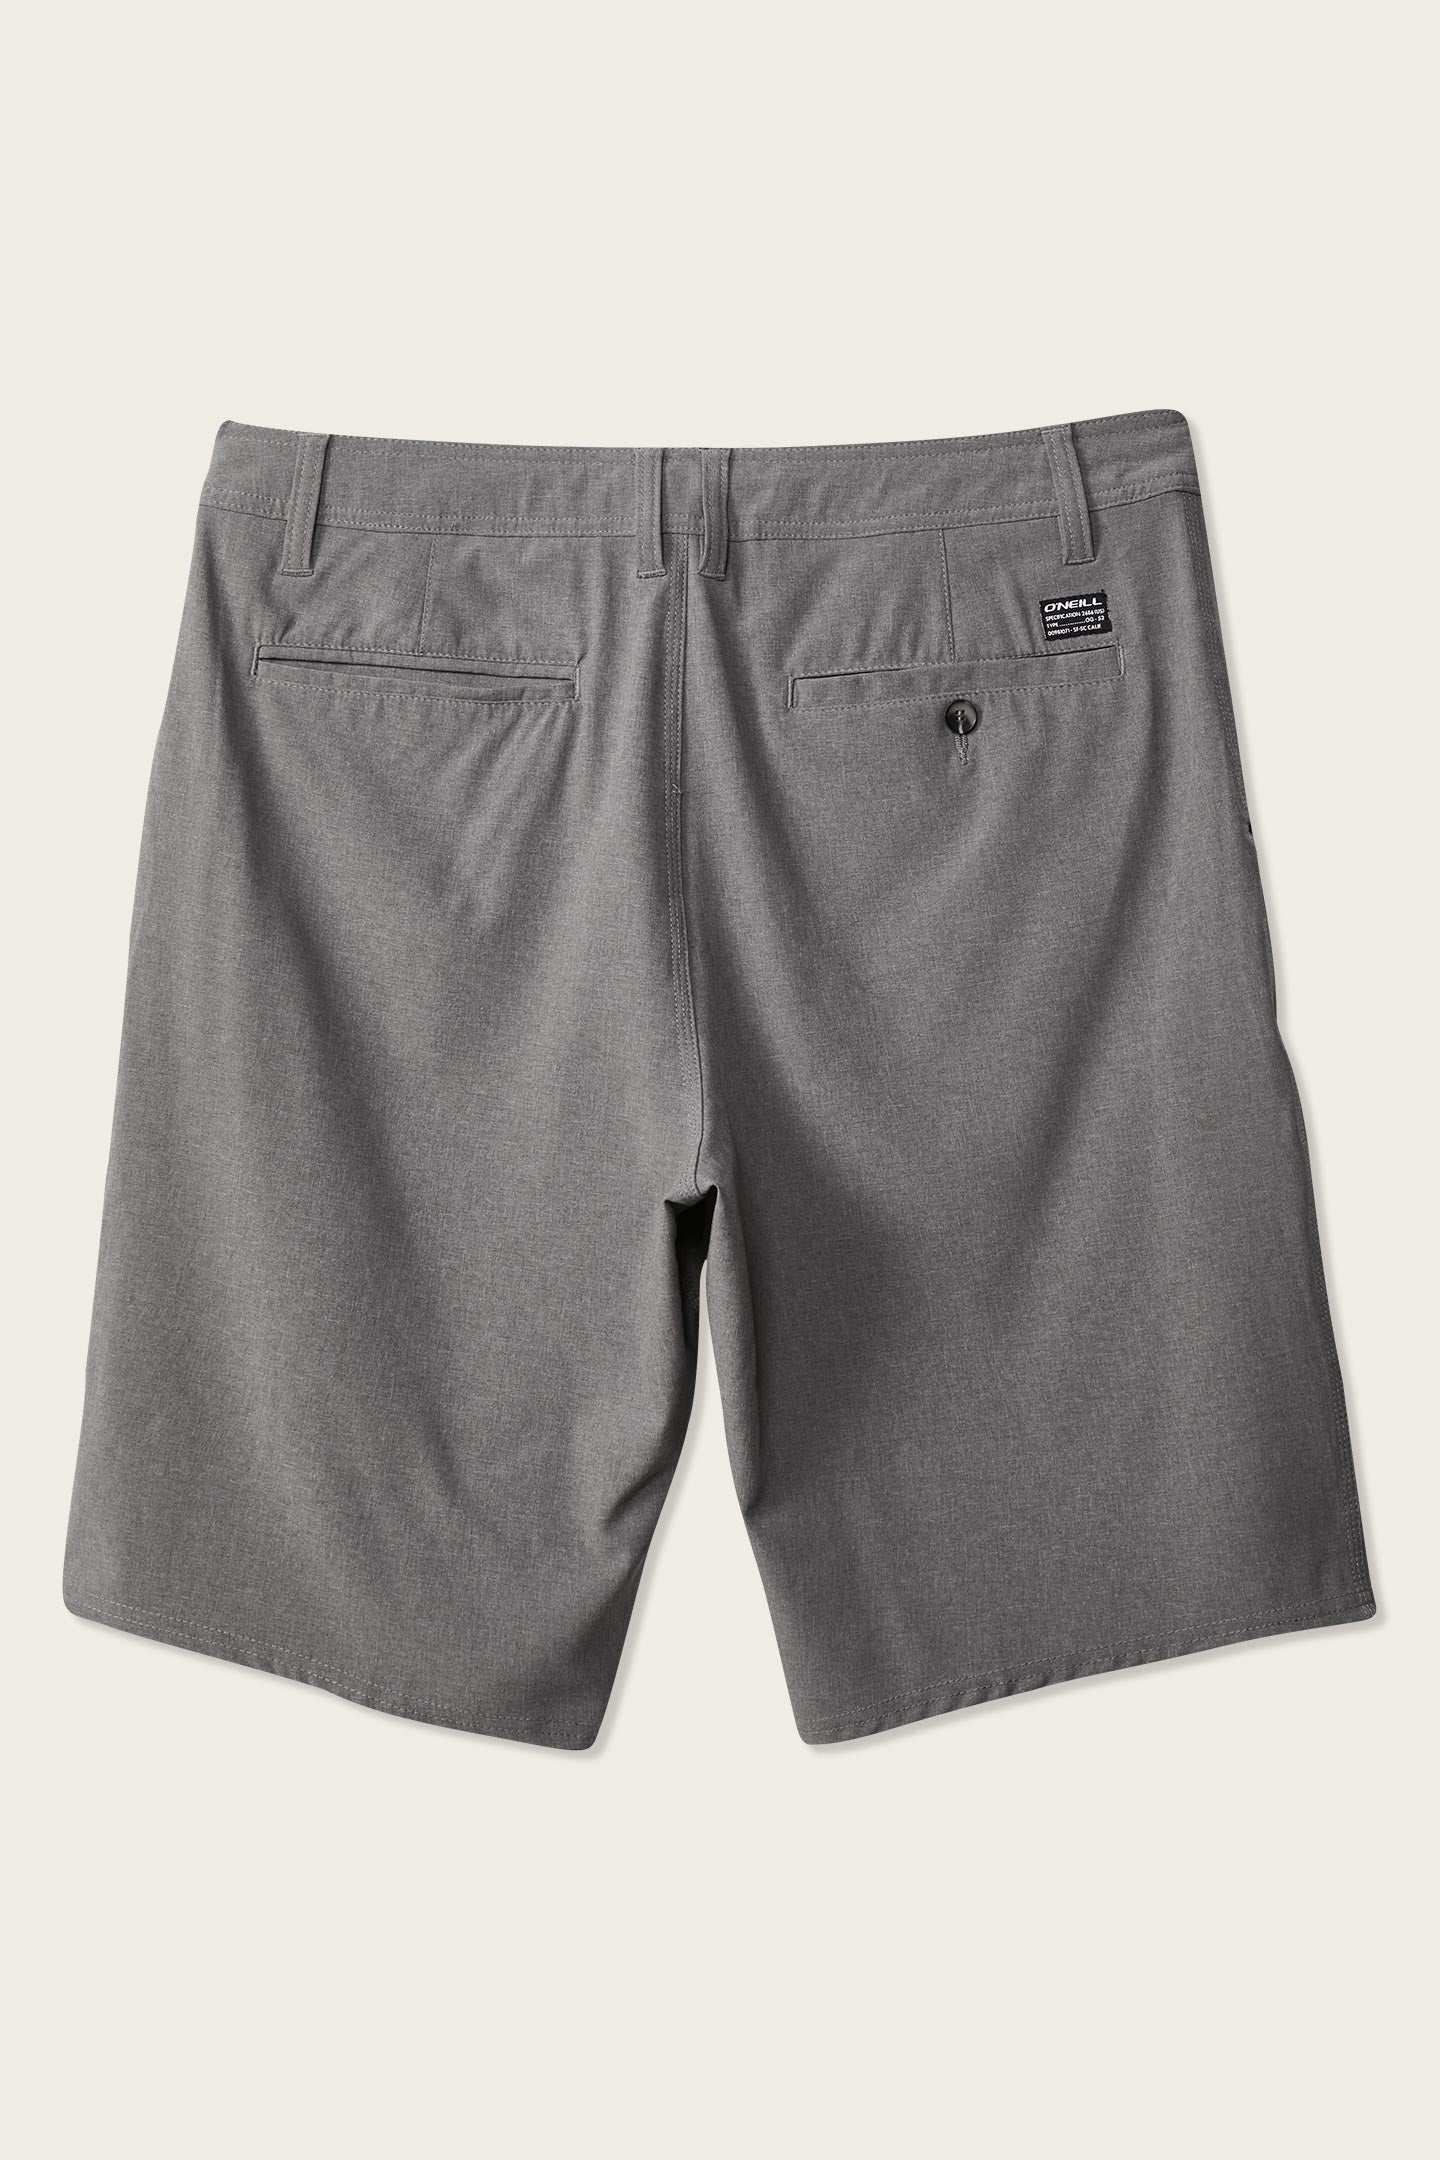 3eefc1e0c9 LOADED RESERVE HYBRID SHORTS – O'Neill